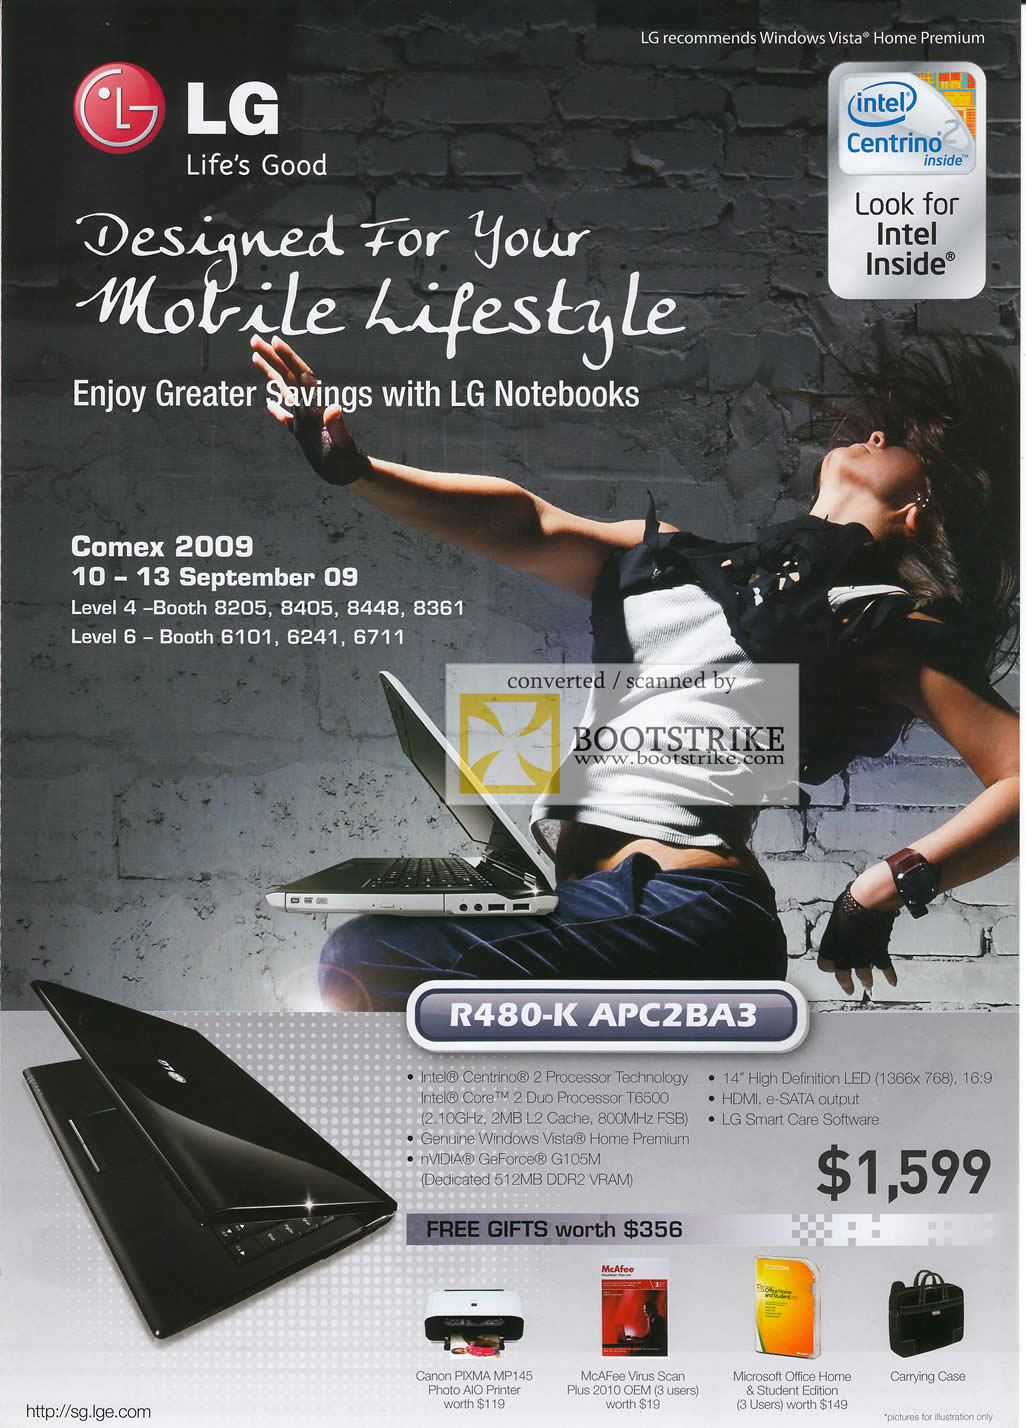 Comex 2009 price list image brochure of LG Notebook R480-K APC2BA3